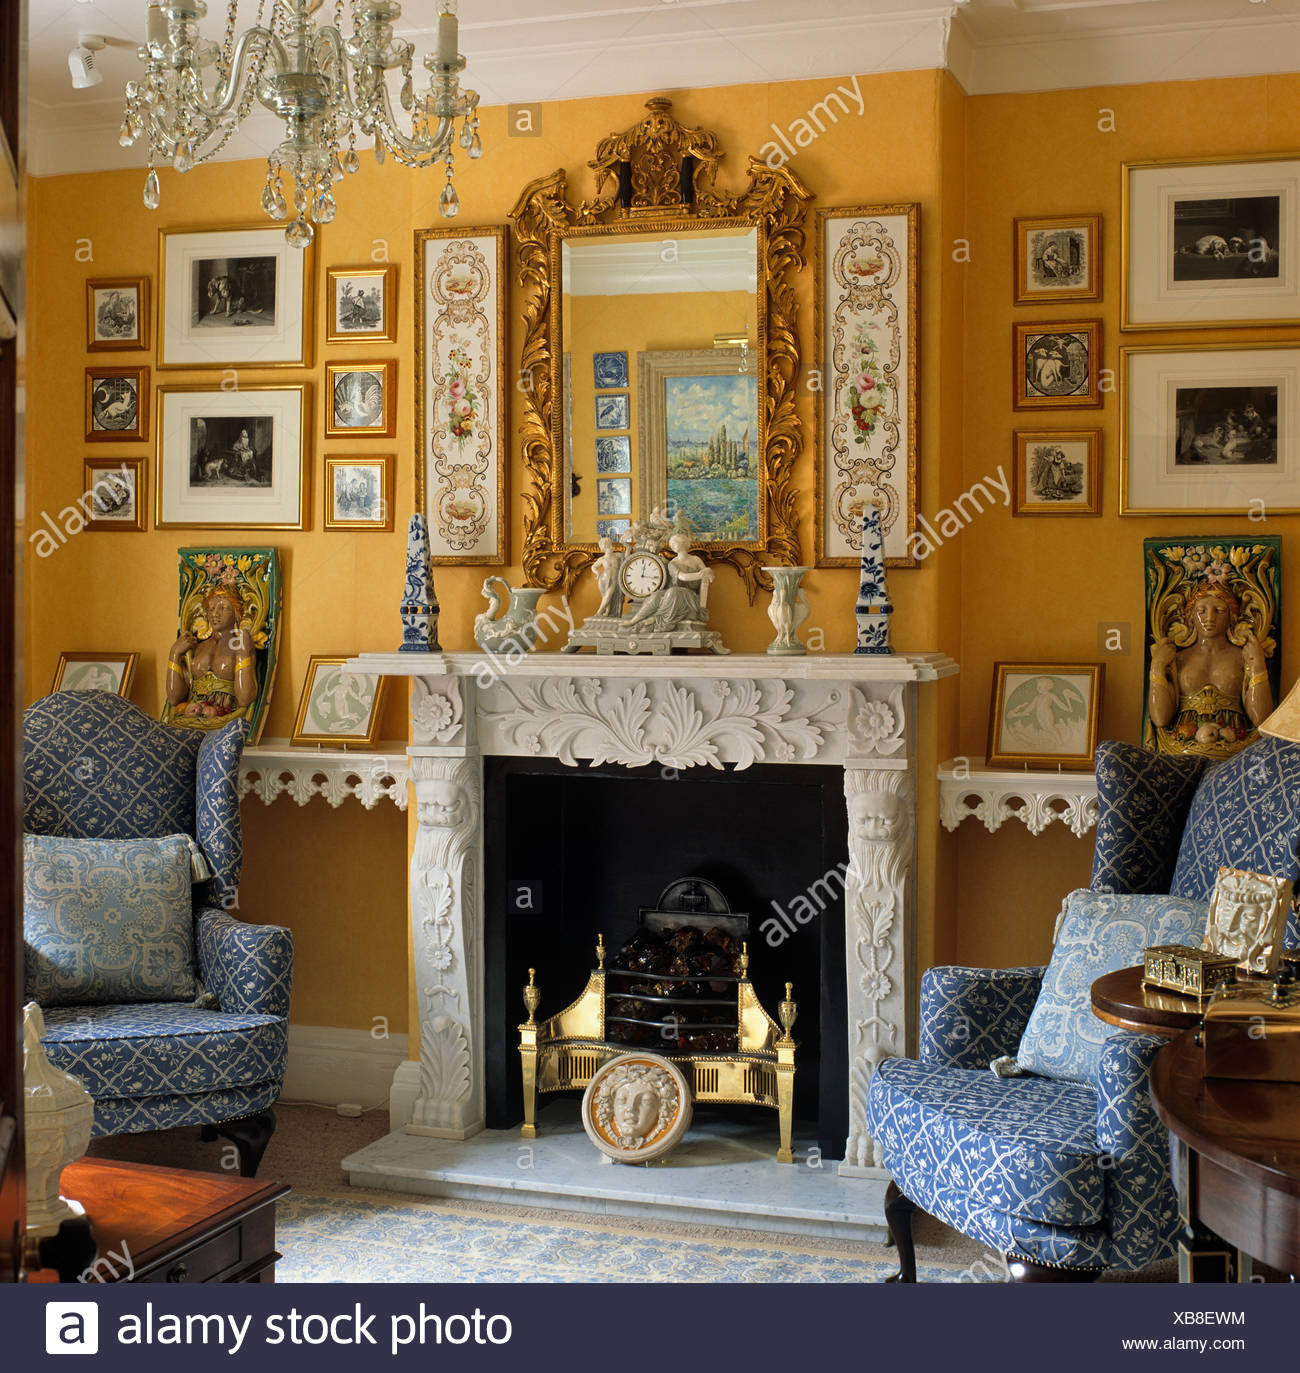 Pictures on either side of antique gilt mirror above ornate fireplace in  pale orange sitting room with blue wing back chairs - Pictures On Either Side Of Antique Gilt Mirror Above Ornate